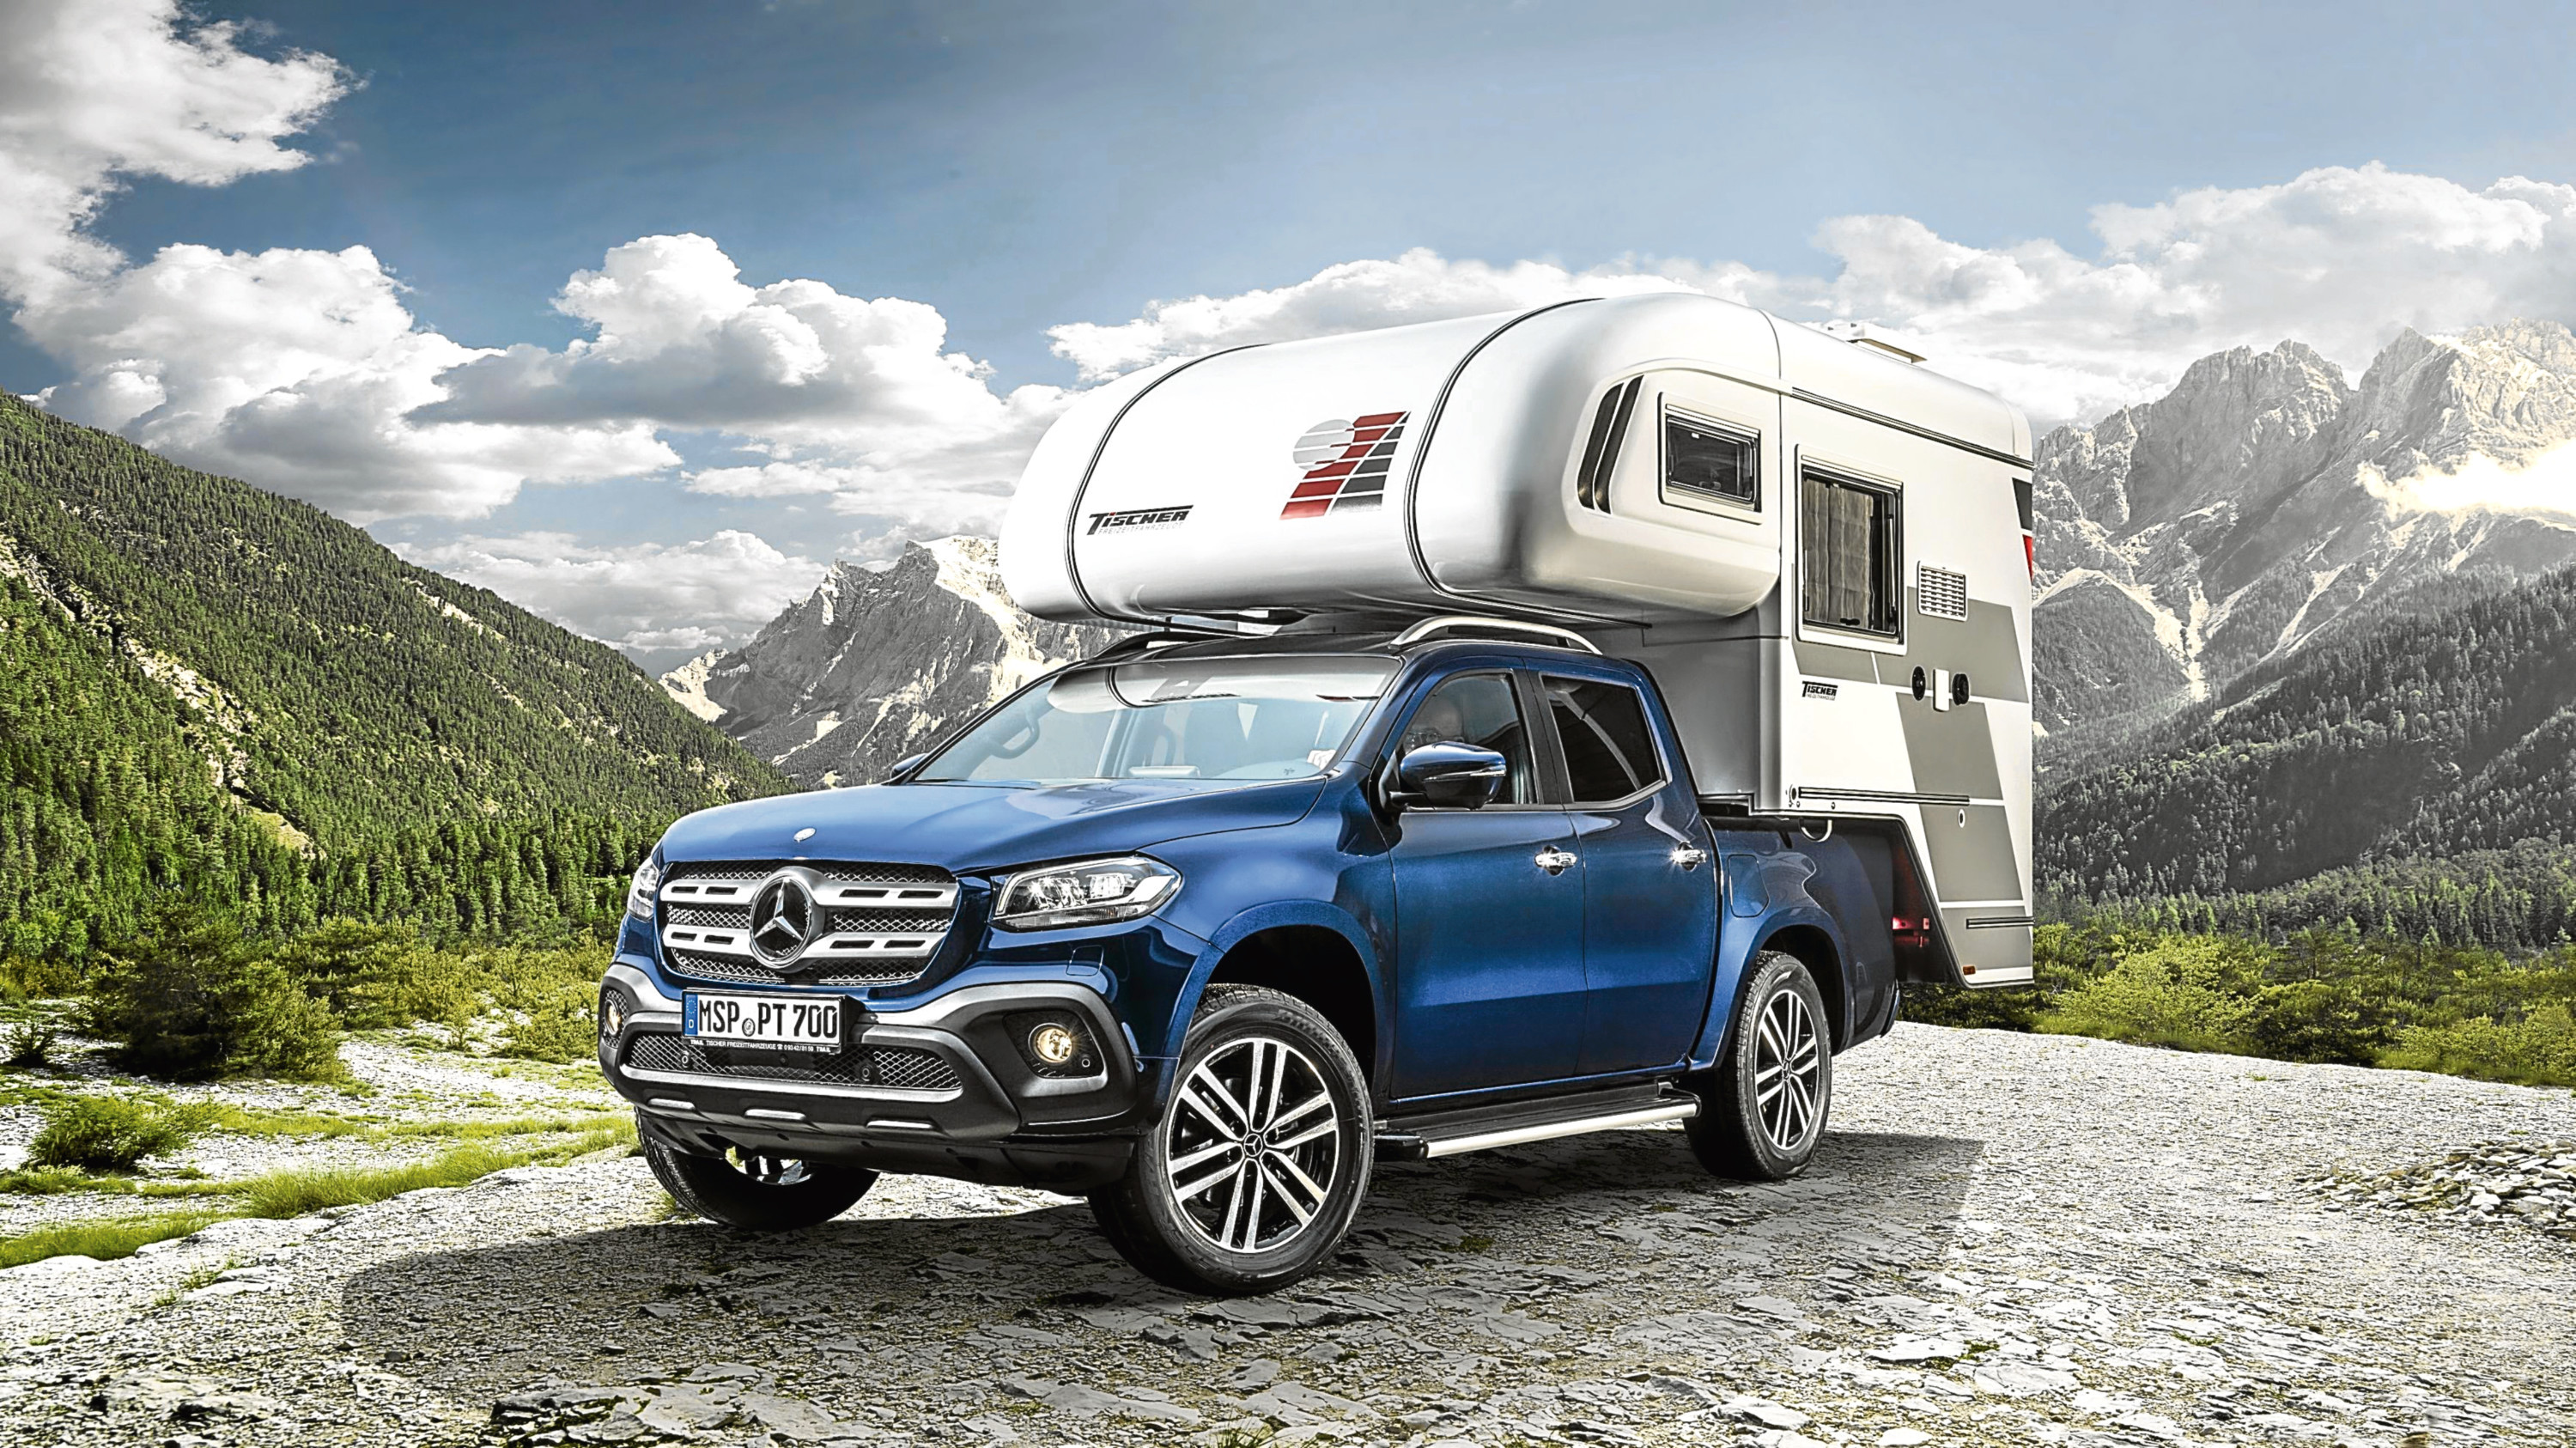 Undated Handout Photo of the new Mercedes-Benz X-Class pick-up truck. See PA Feature MOTORING News. Picture credit should read: Mercedes-Benz/PA. WARNING: This picture must only be used to accompany PA Feature MOTORING News.